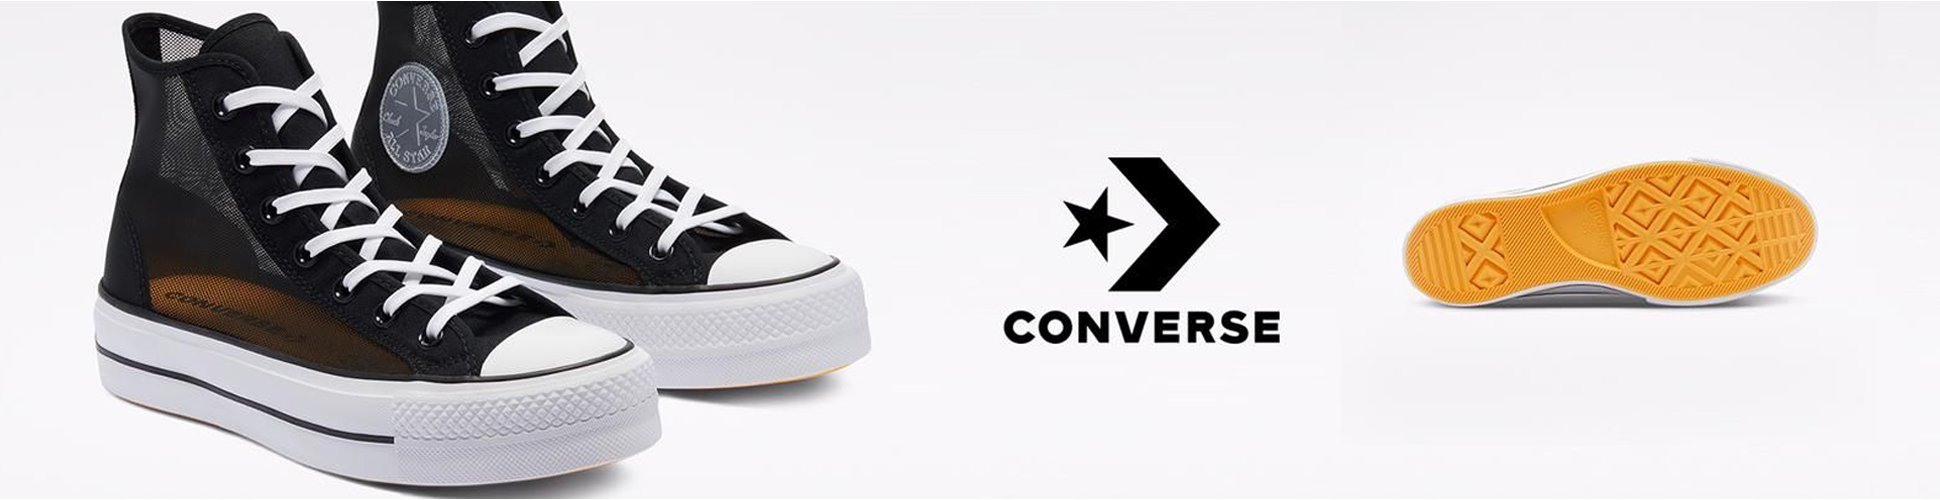 the converse elevate collection